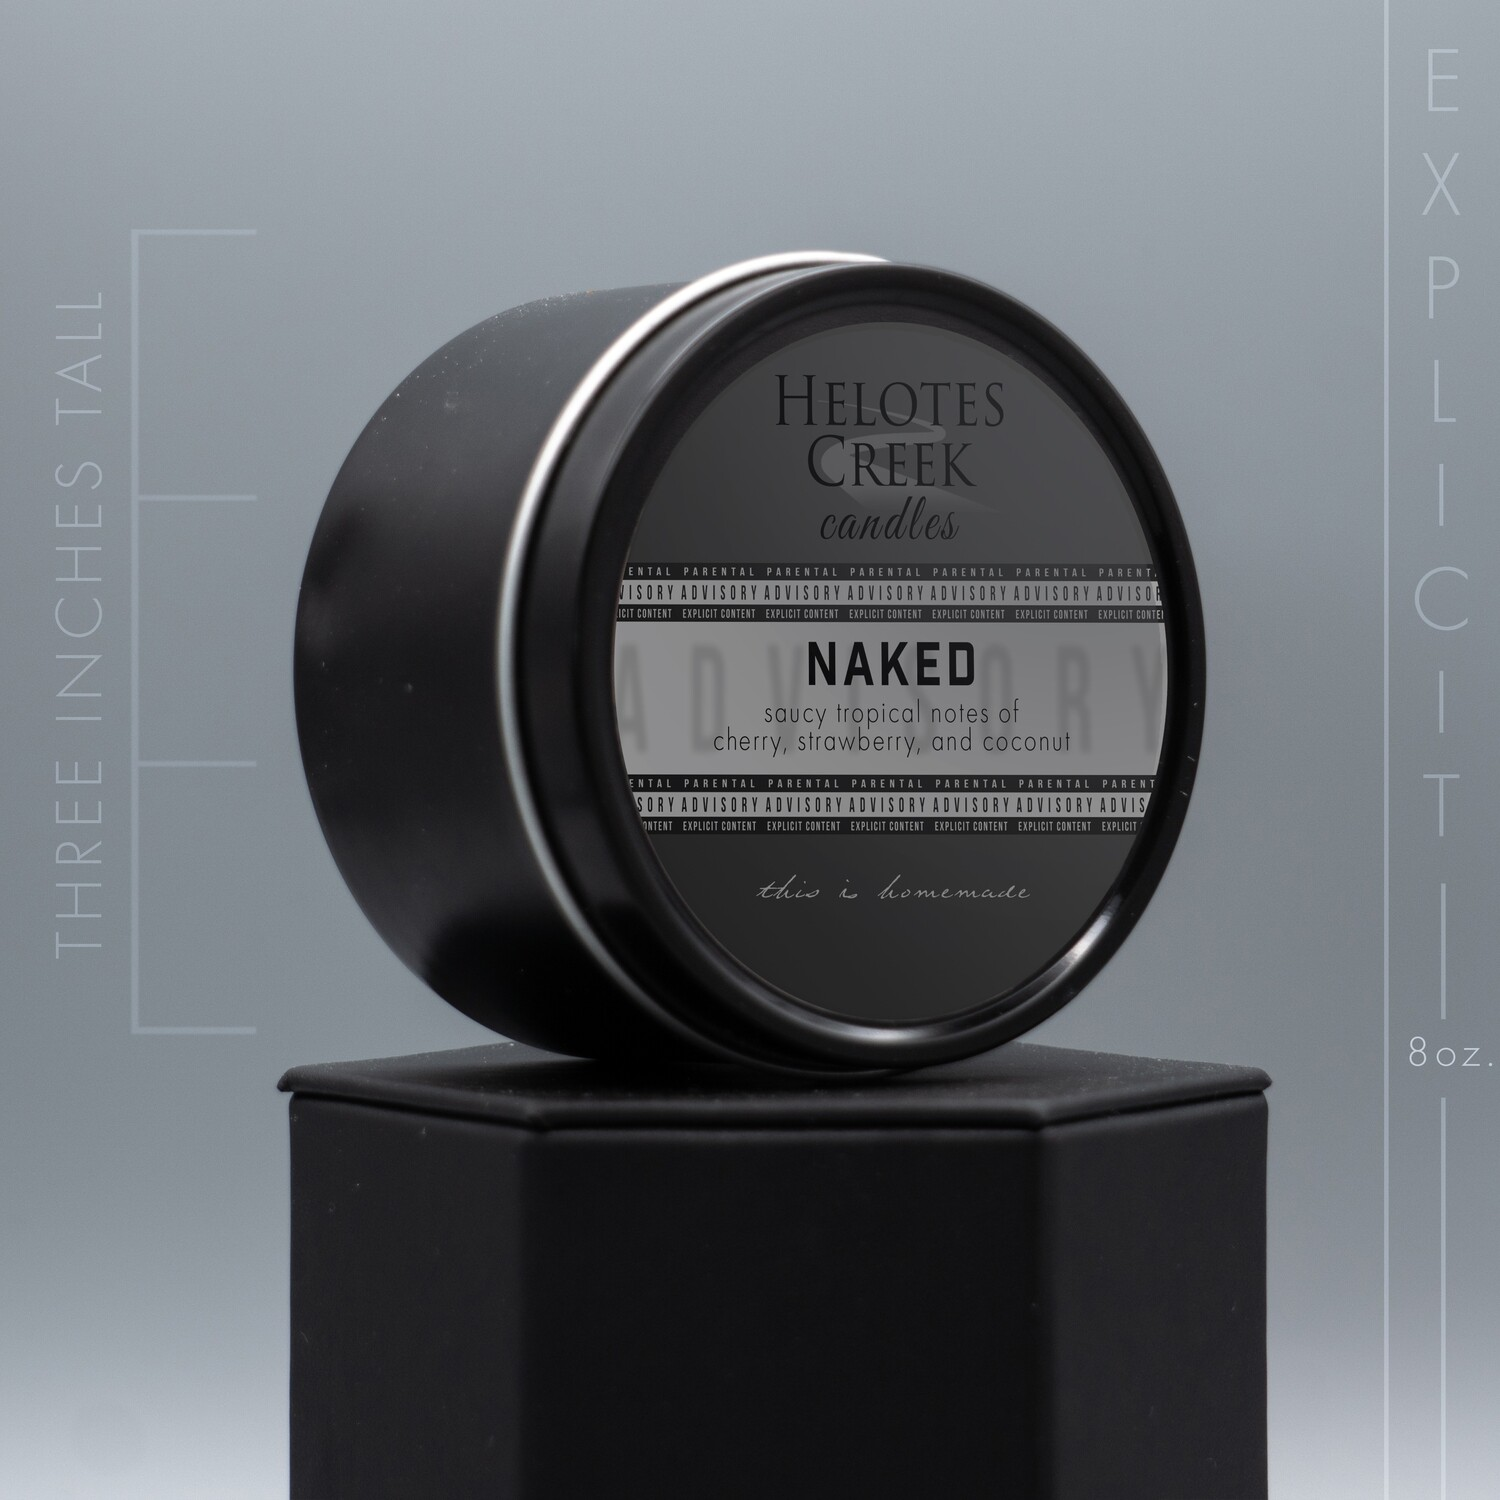 8 oz Naked Explicit Candle in Tin